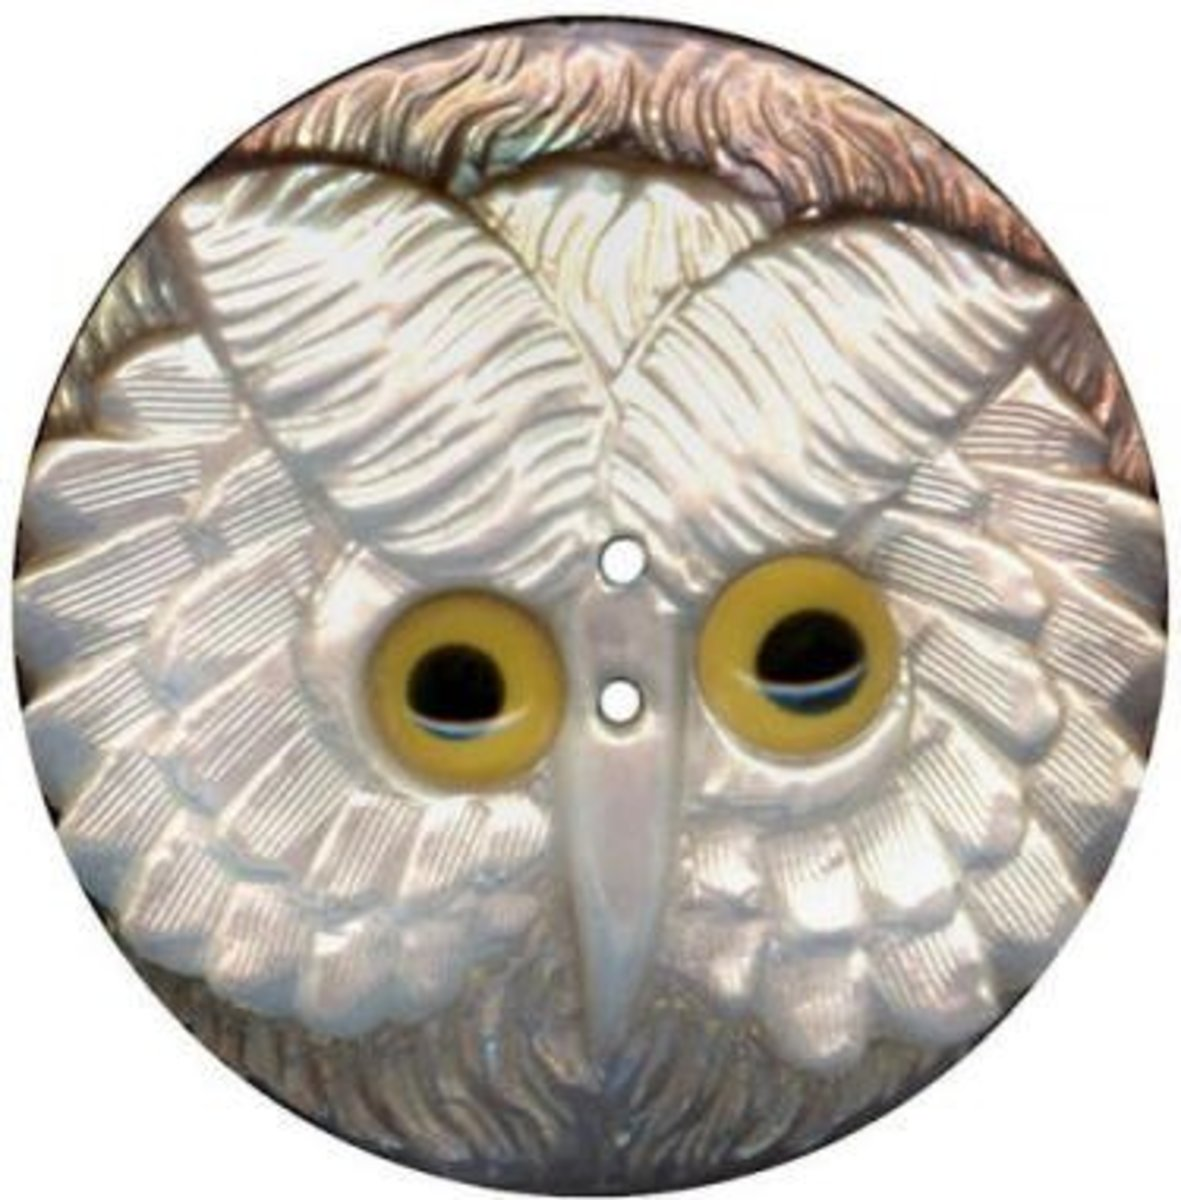 Owl button made from shell